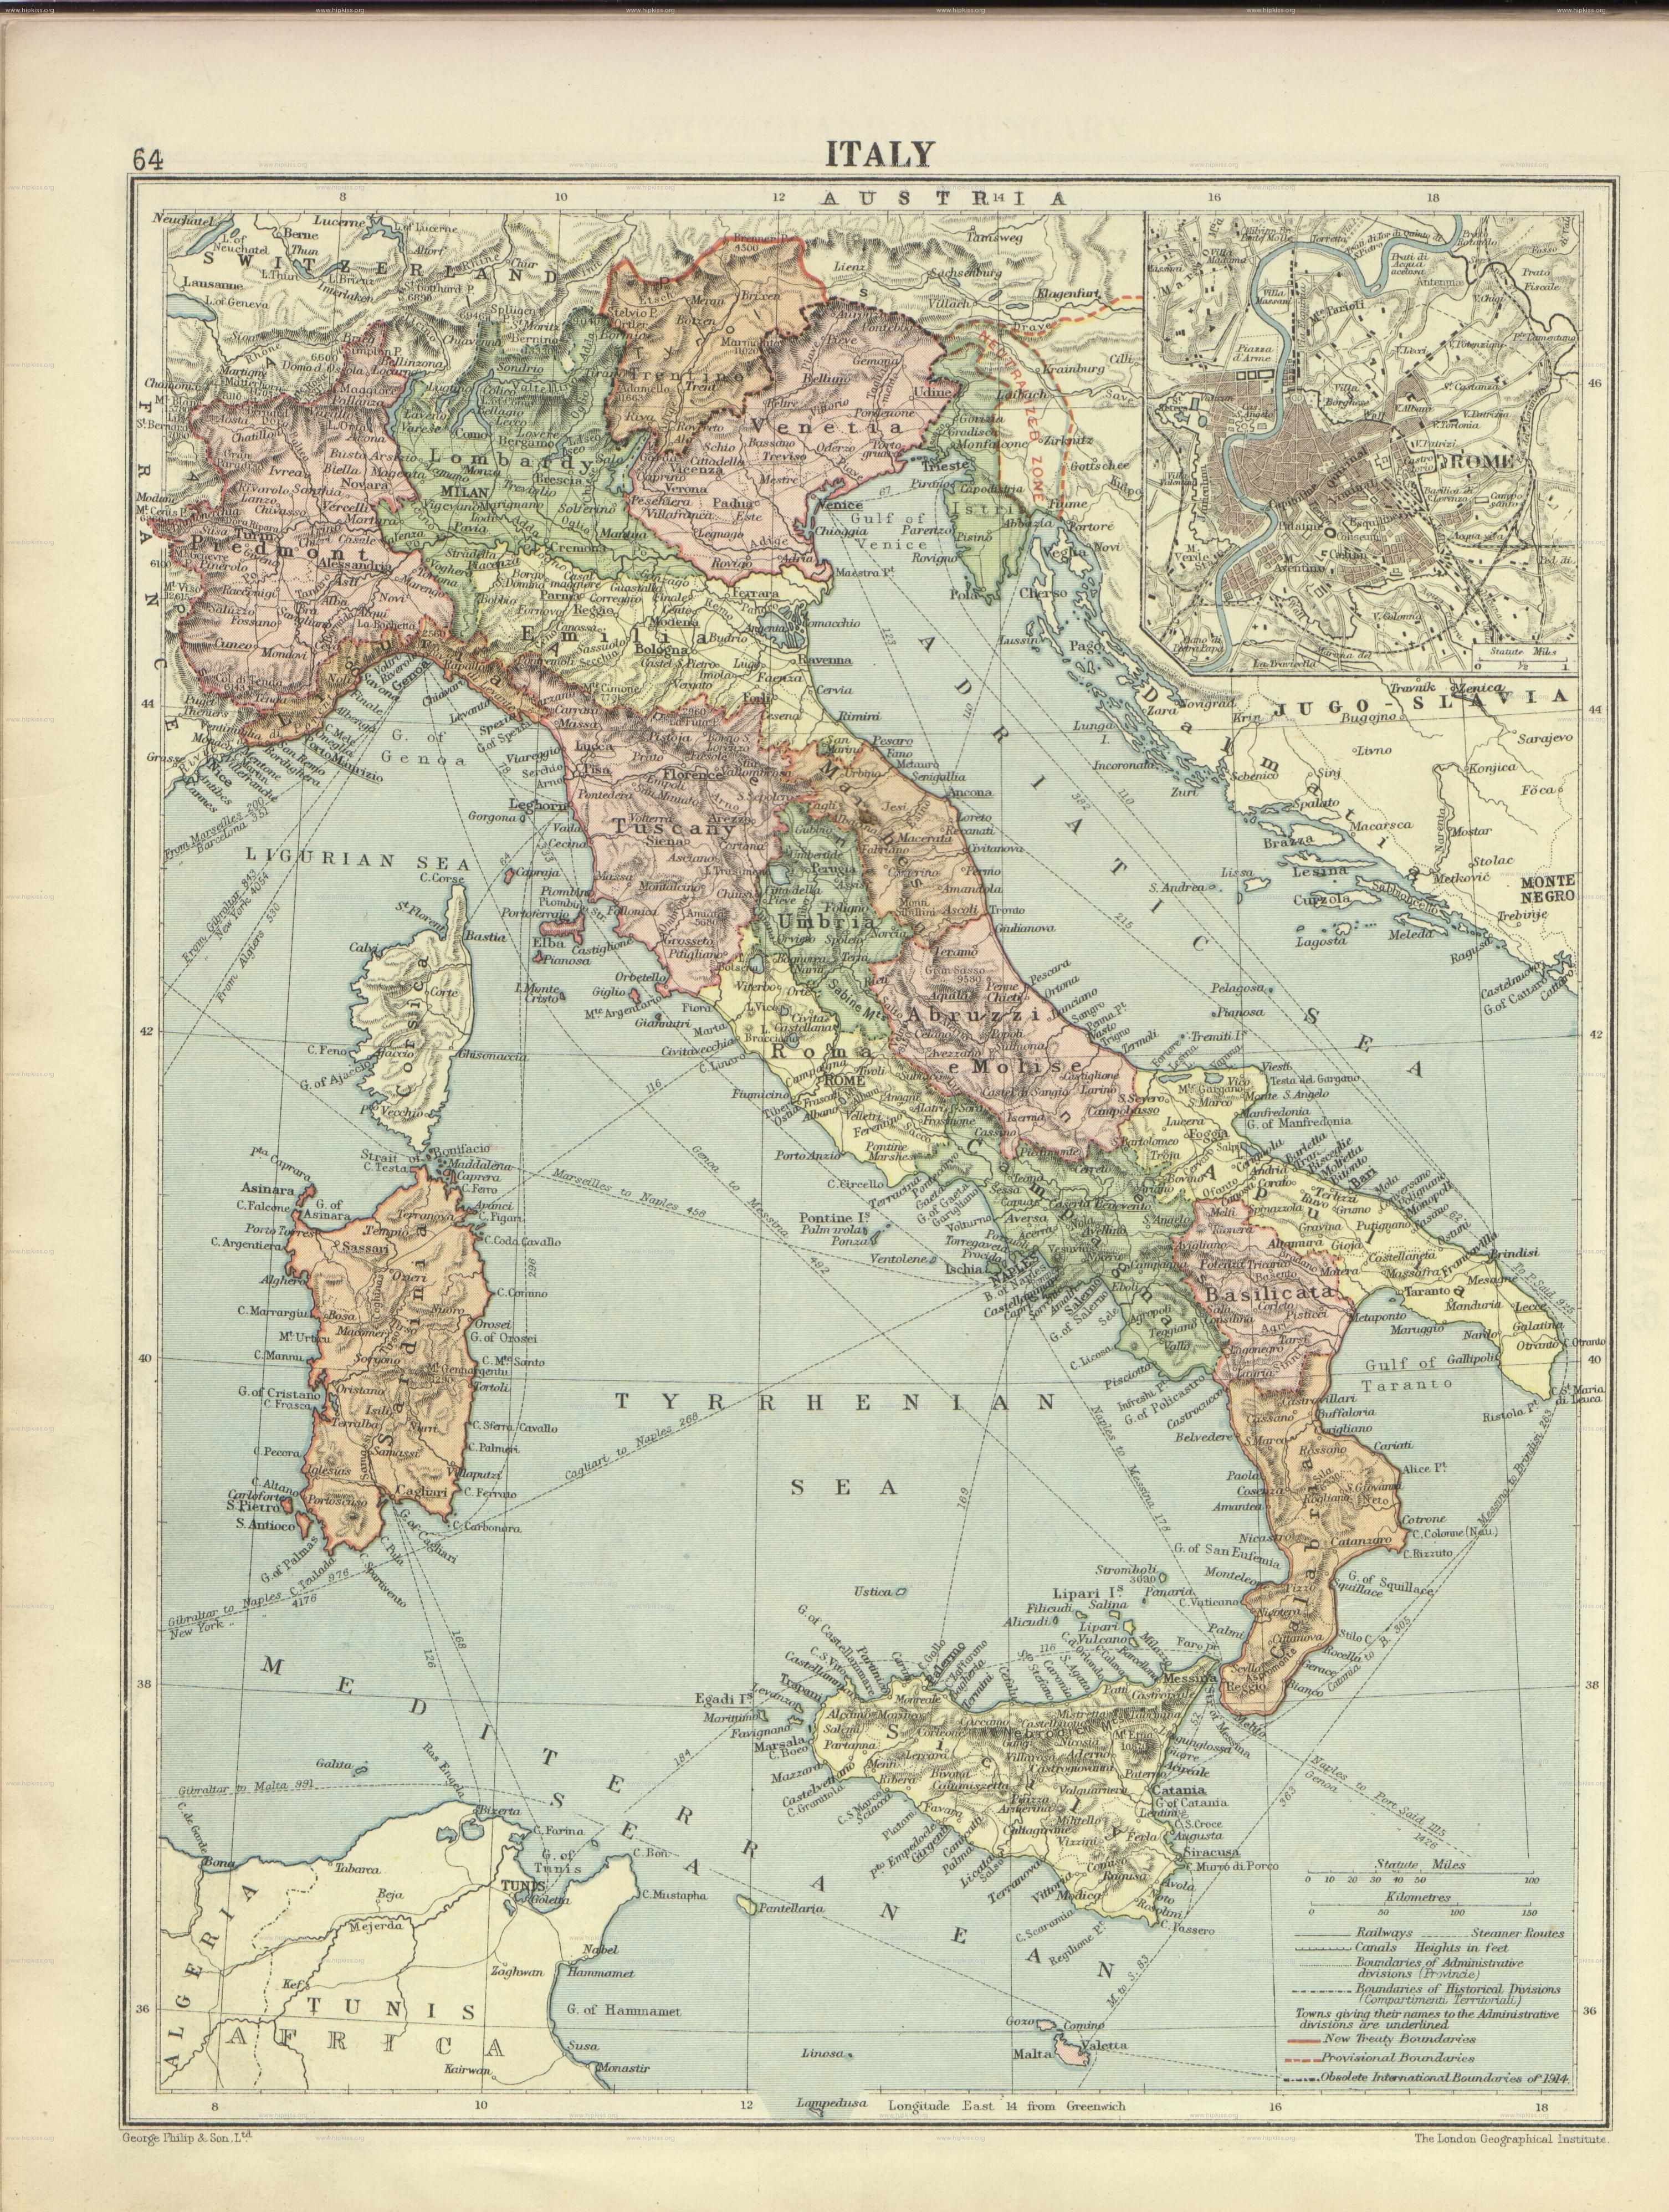 London Atlas Map.Historic Maps Of Italy Italy London Geographical Institute The